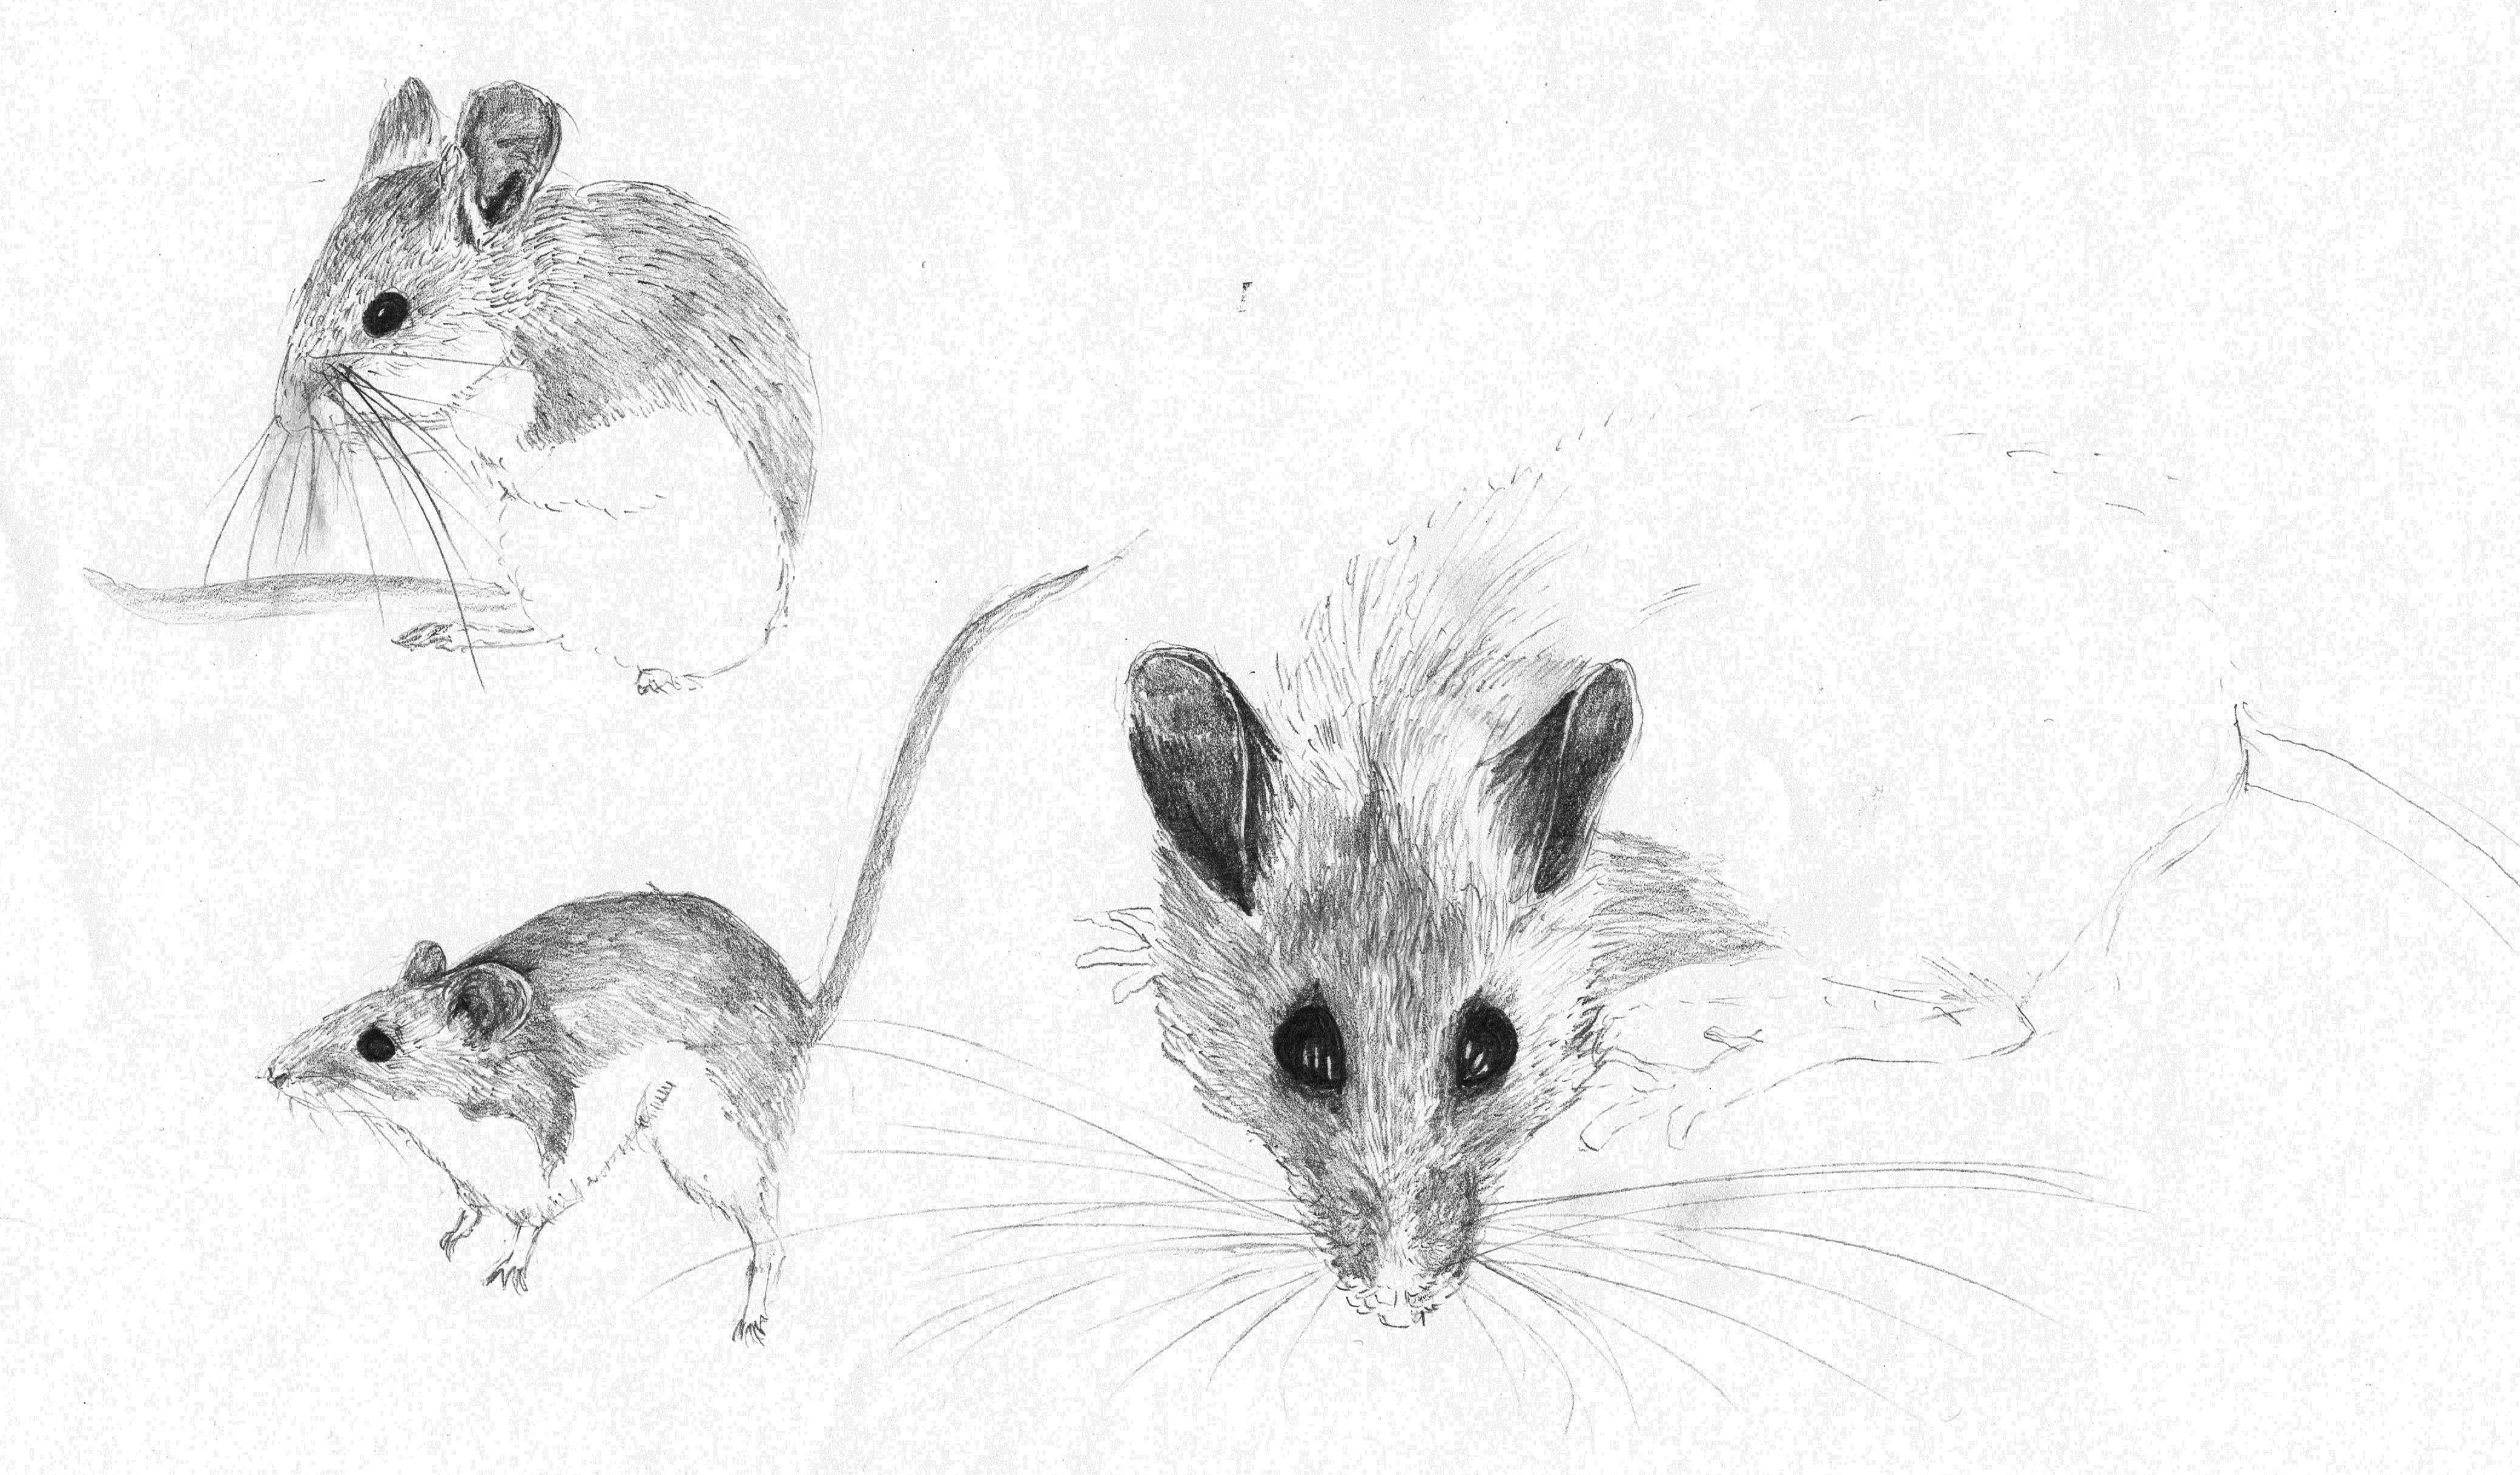 Drawn rodent deer mouse Unfortunately sketches Deer marthamouse Mice